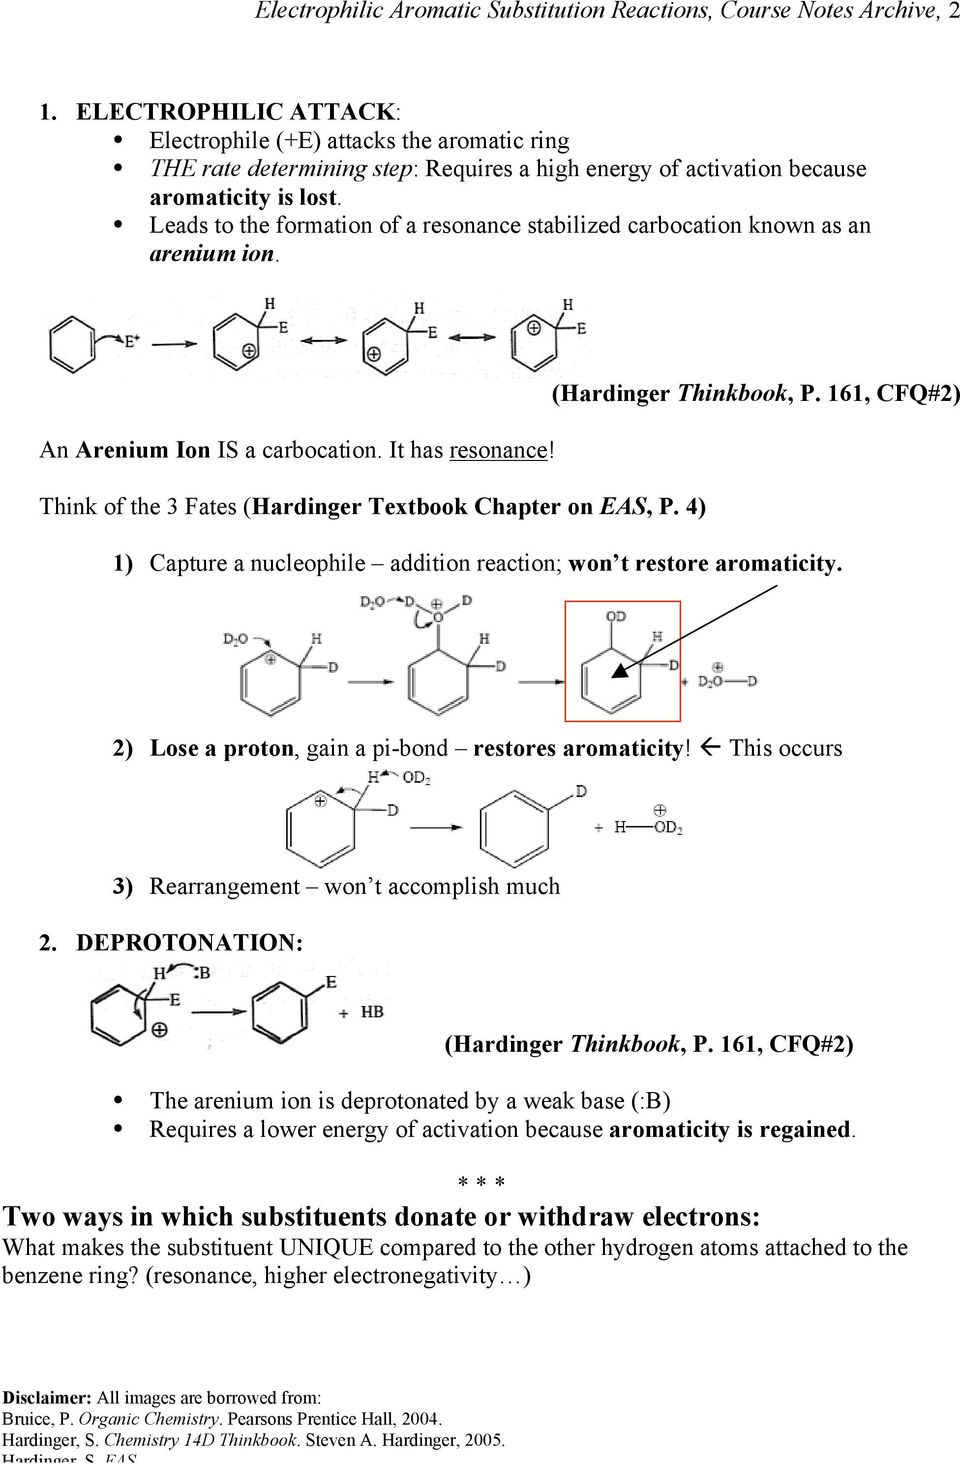 Leads to the formation of a resonance stabilized carbocation known as an arenium ion. (Hardinger Thinkbook, P. 161, CFQ#2) An Arenium Ion IS a carbocation. It has resonance!